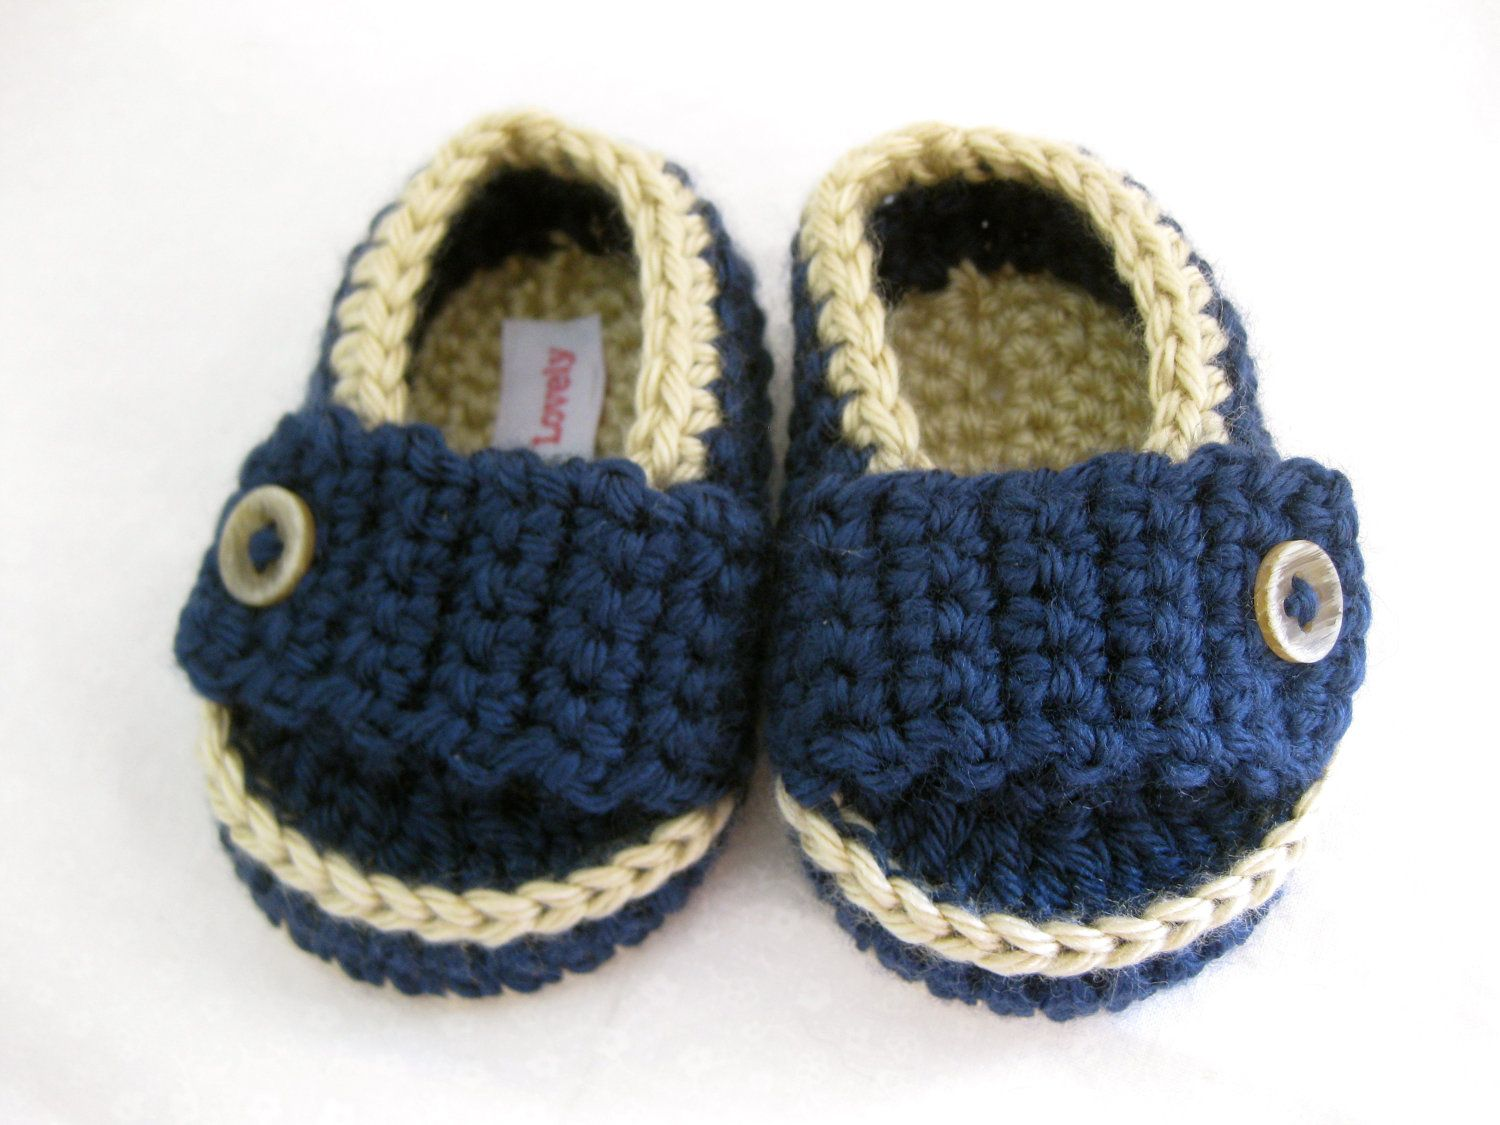 Baby Boy Booties / Shoes / Loafer Tan & Dark Blue Crochet  - YOUR choice size newborn - 12 months - photo prop - clothing. $24.00, via Etsy.